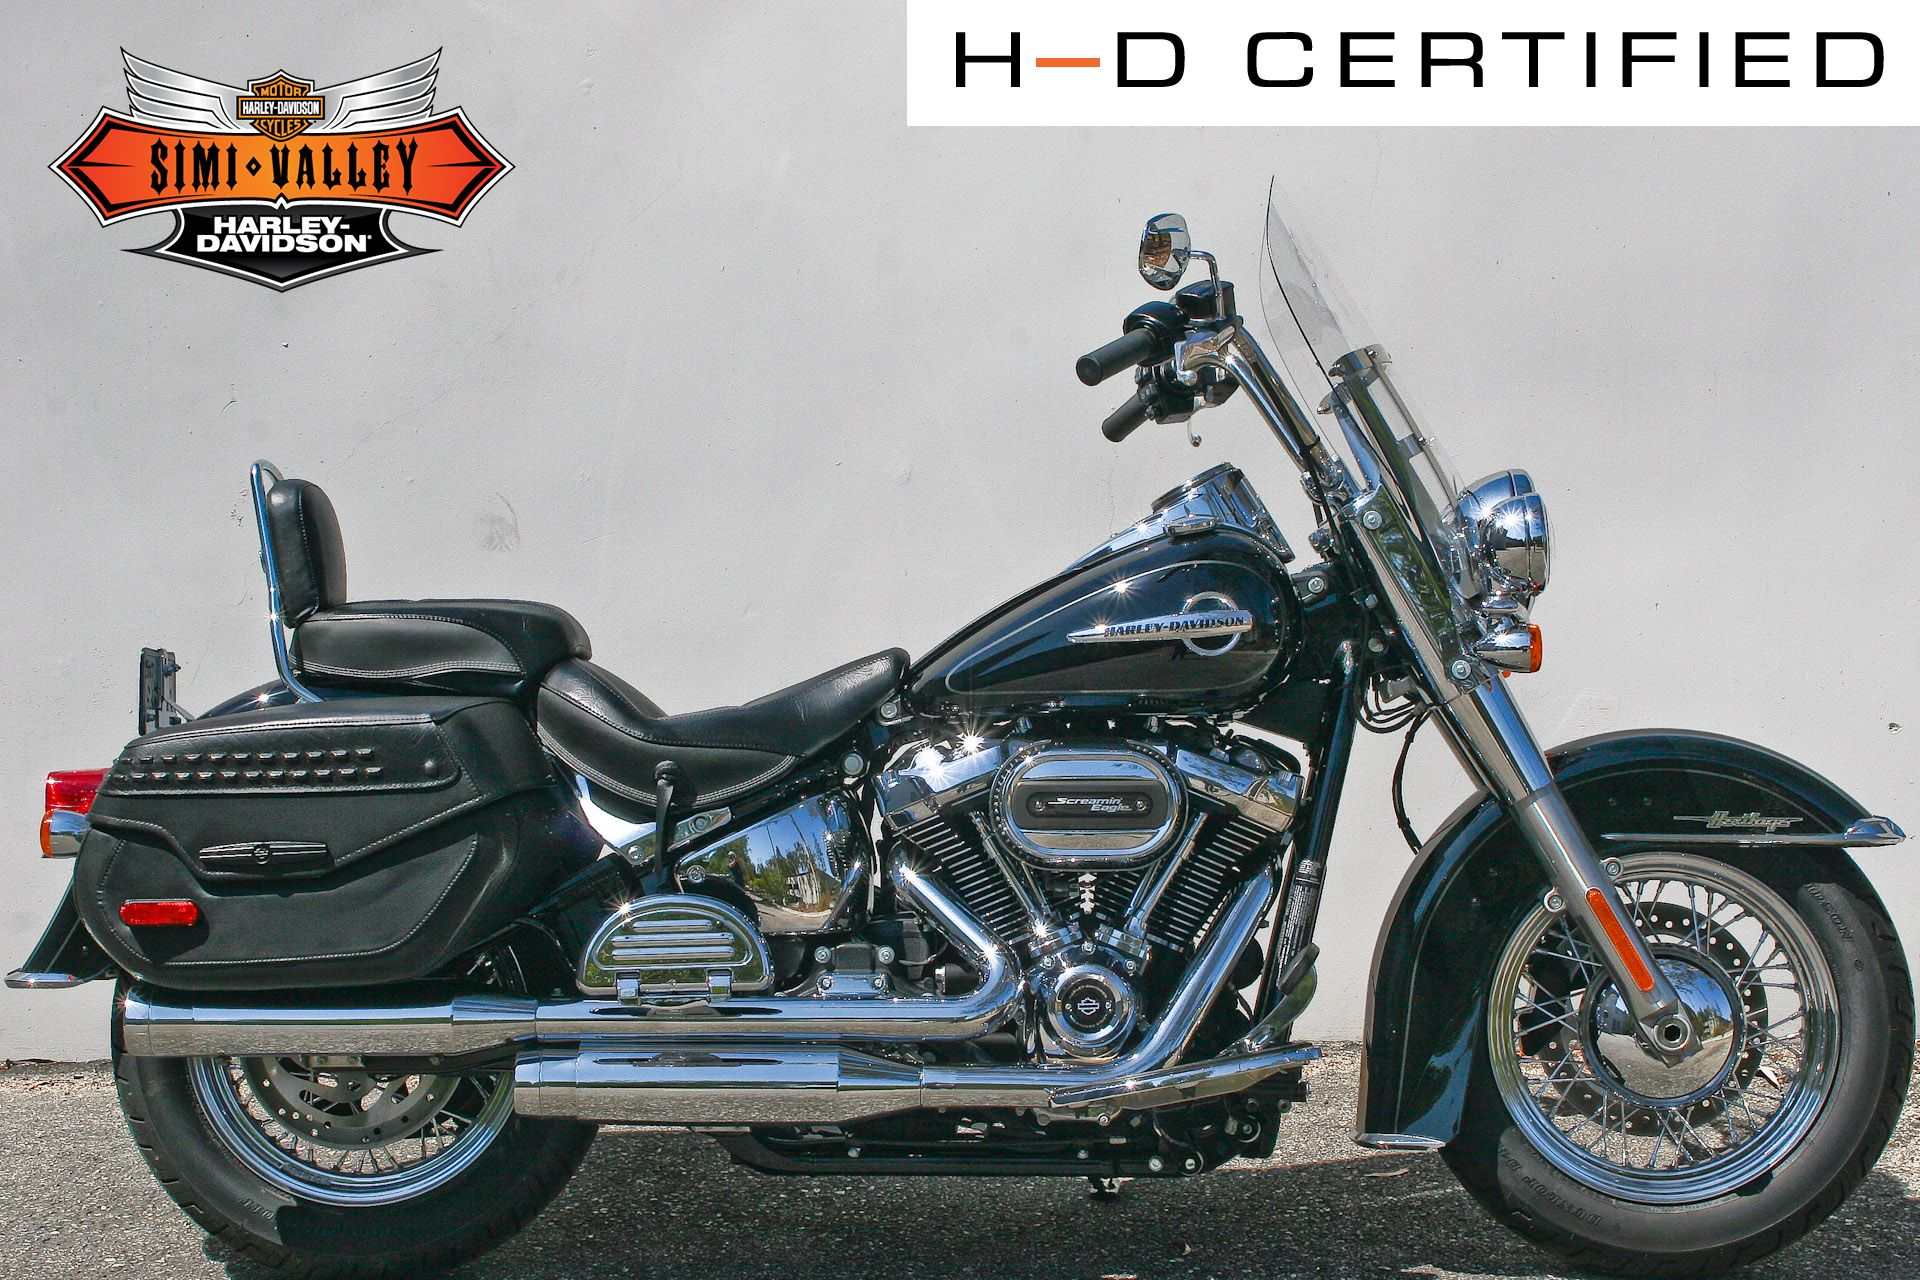 Certified Pre-Owned 2020 Harley-Davidson Softail Heritage Classic FLHC